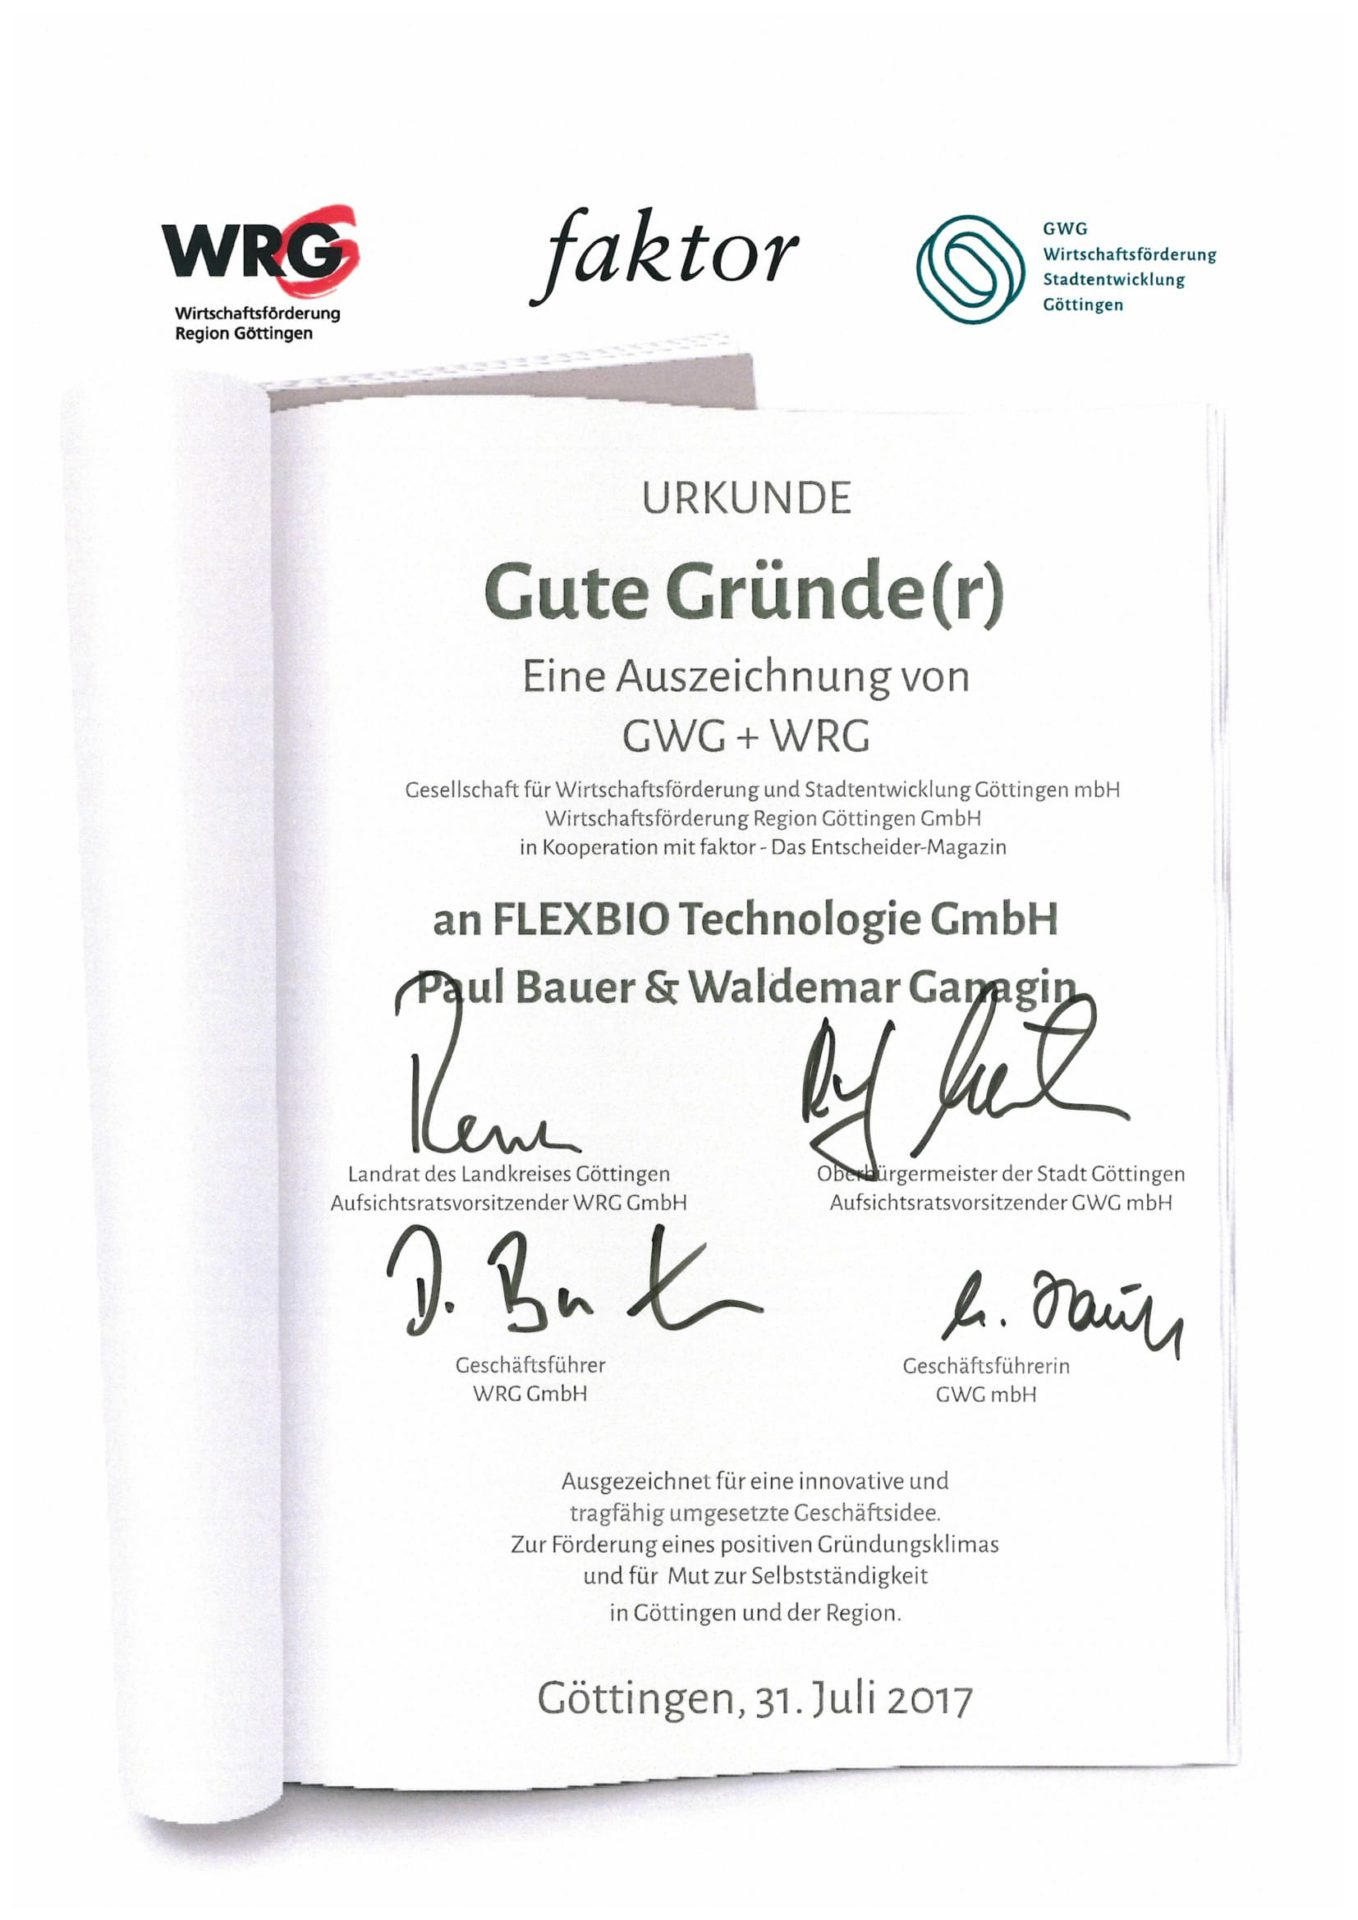 Certificate from the economic development of the Göttingen region for good founders to FlexBio Technologie GmbH